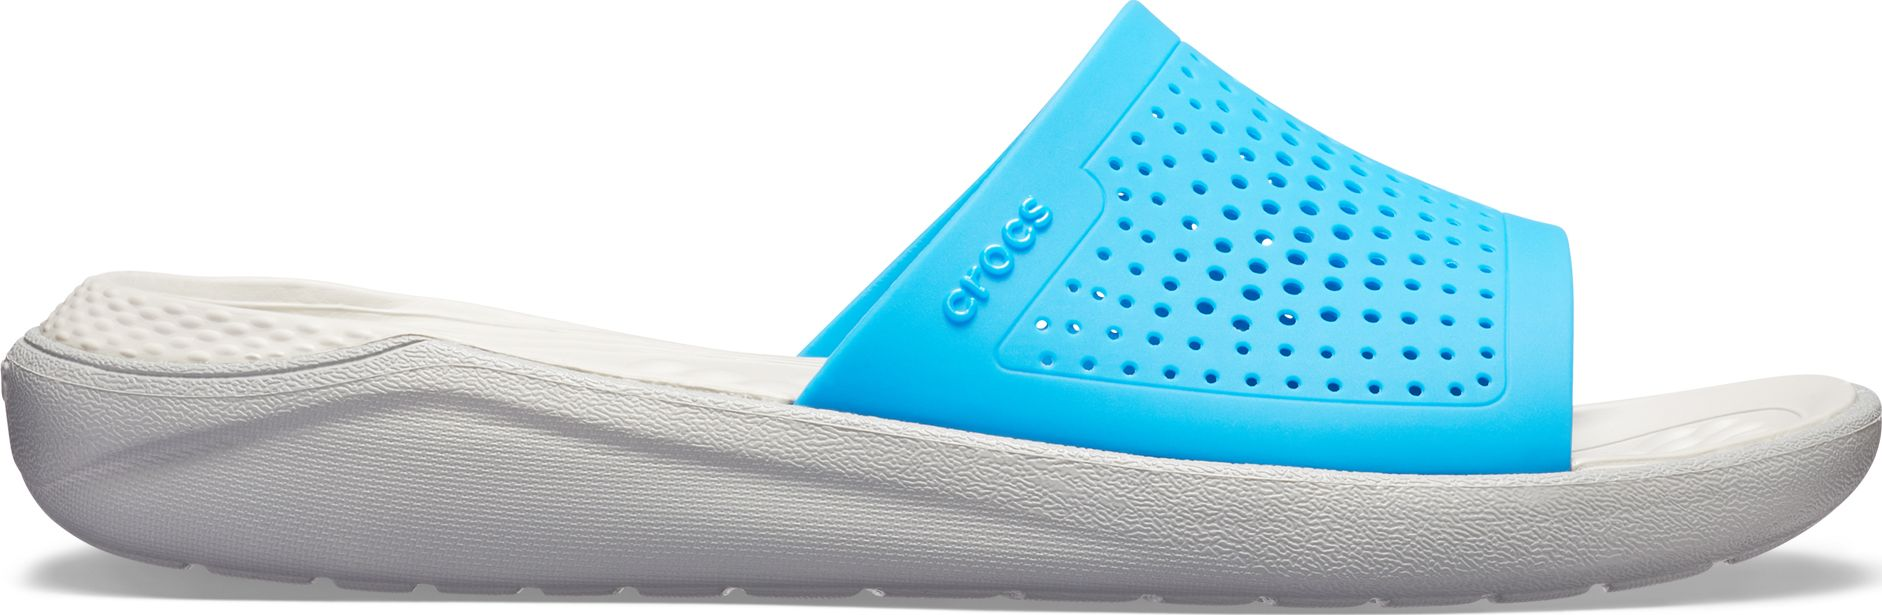 Crocs™ LiteRide Slide Ocean/Light Grey 44,5